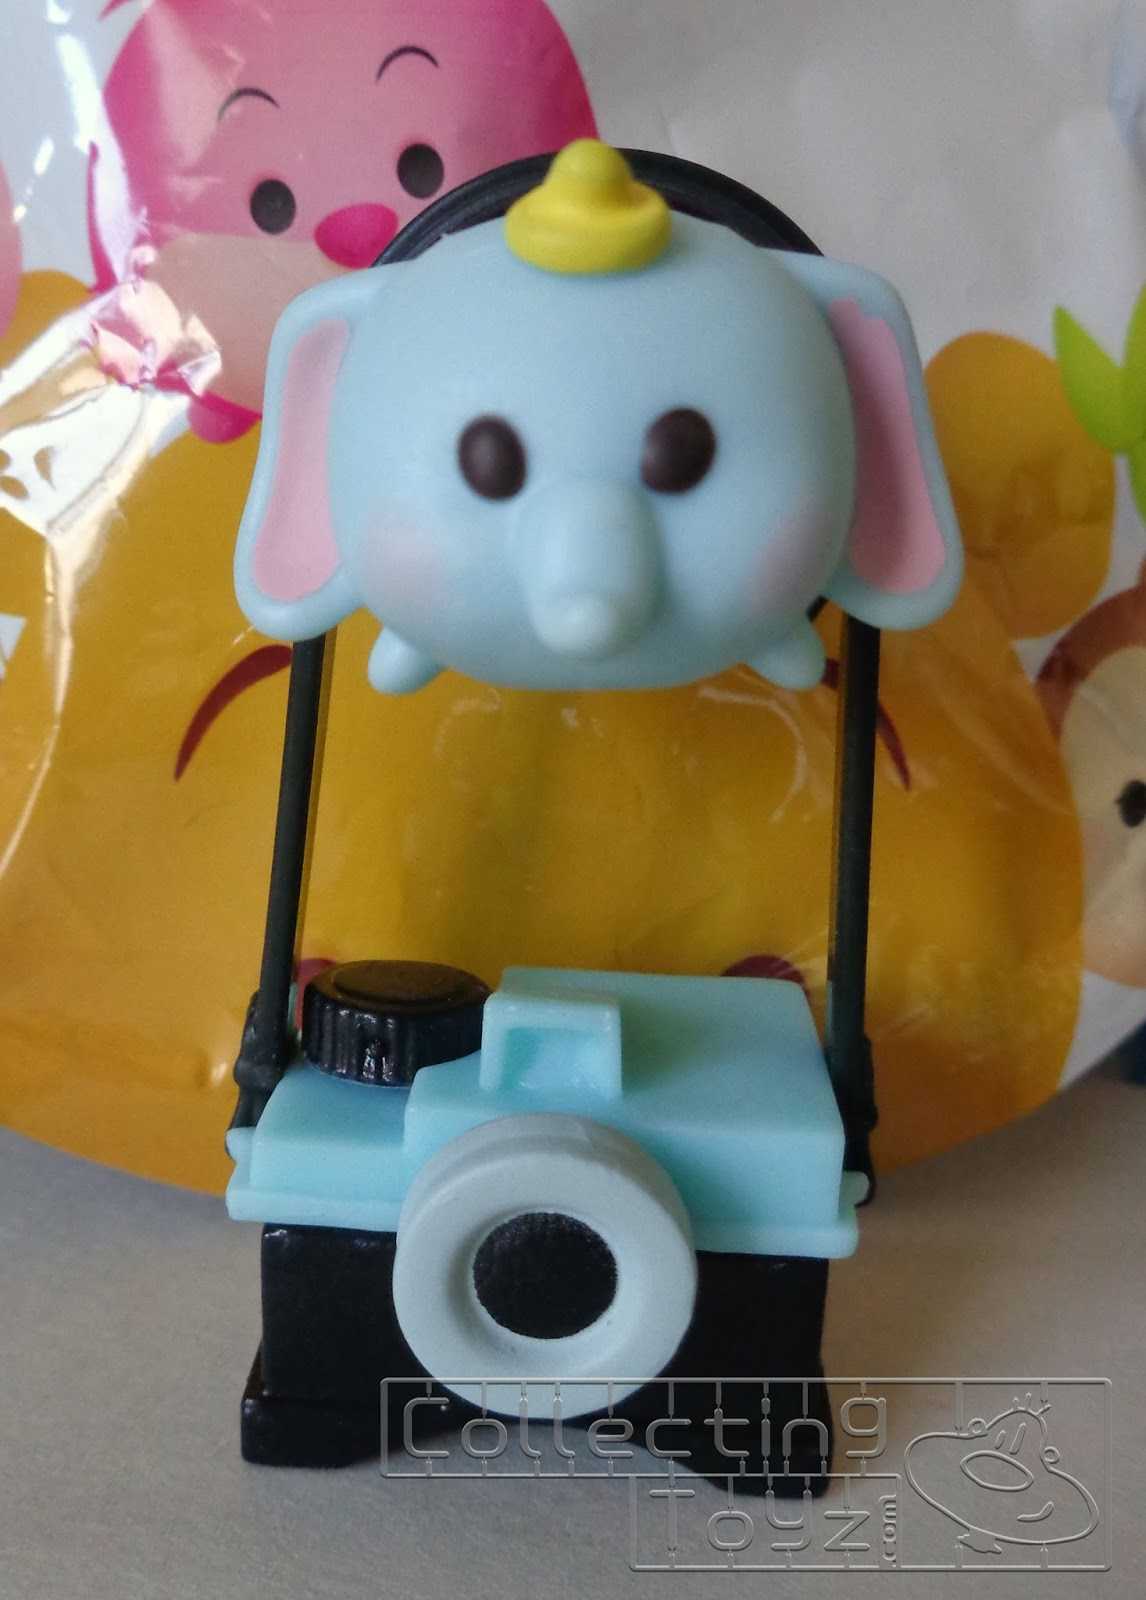 4835853e8 We opened our pack up and pulled Dumbo! It comes in 2 pieces, Dumbo and the  Camera which are bagged separately so you do have to do some minor assembly  but ...